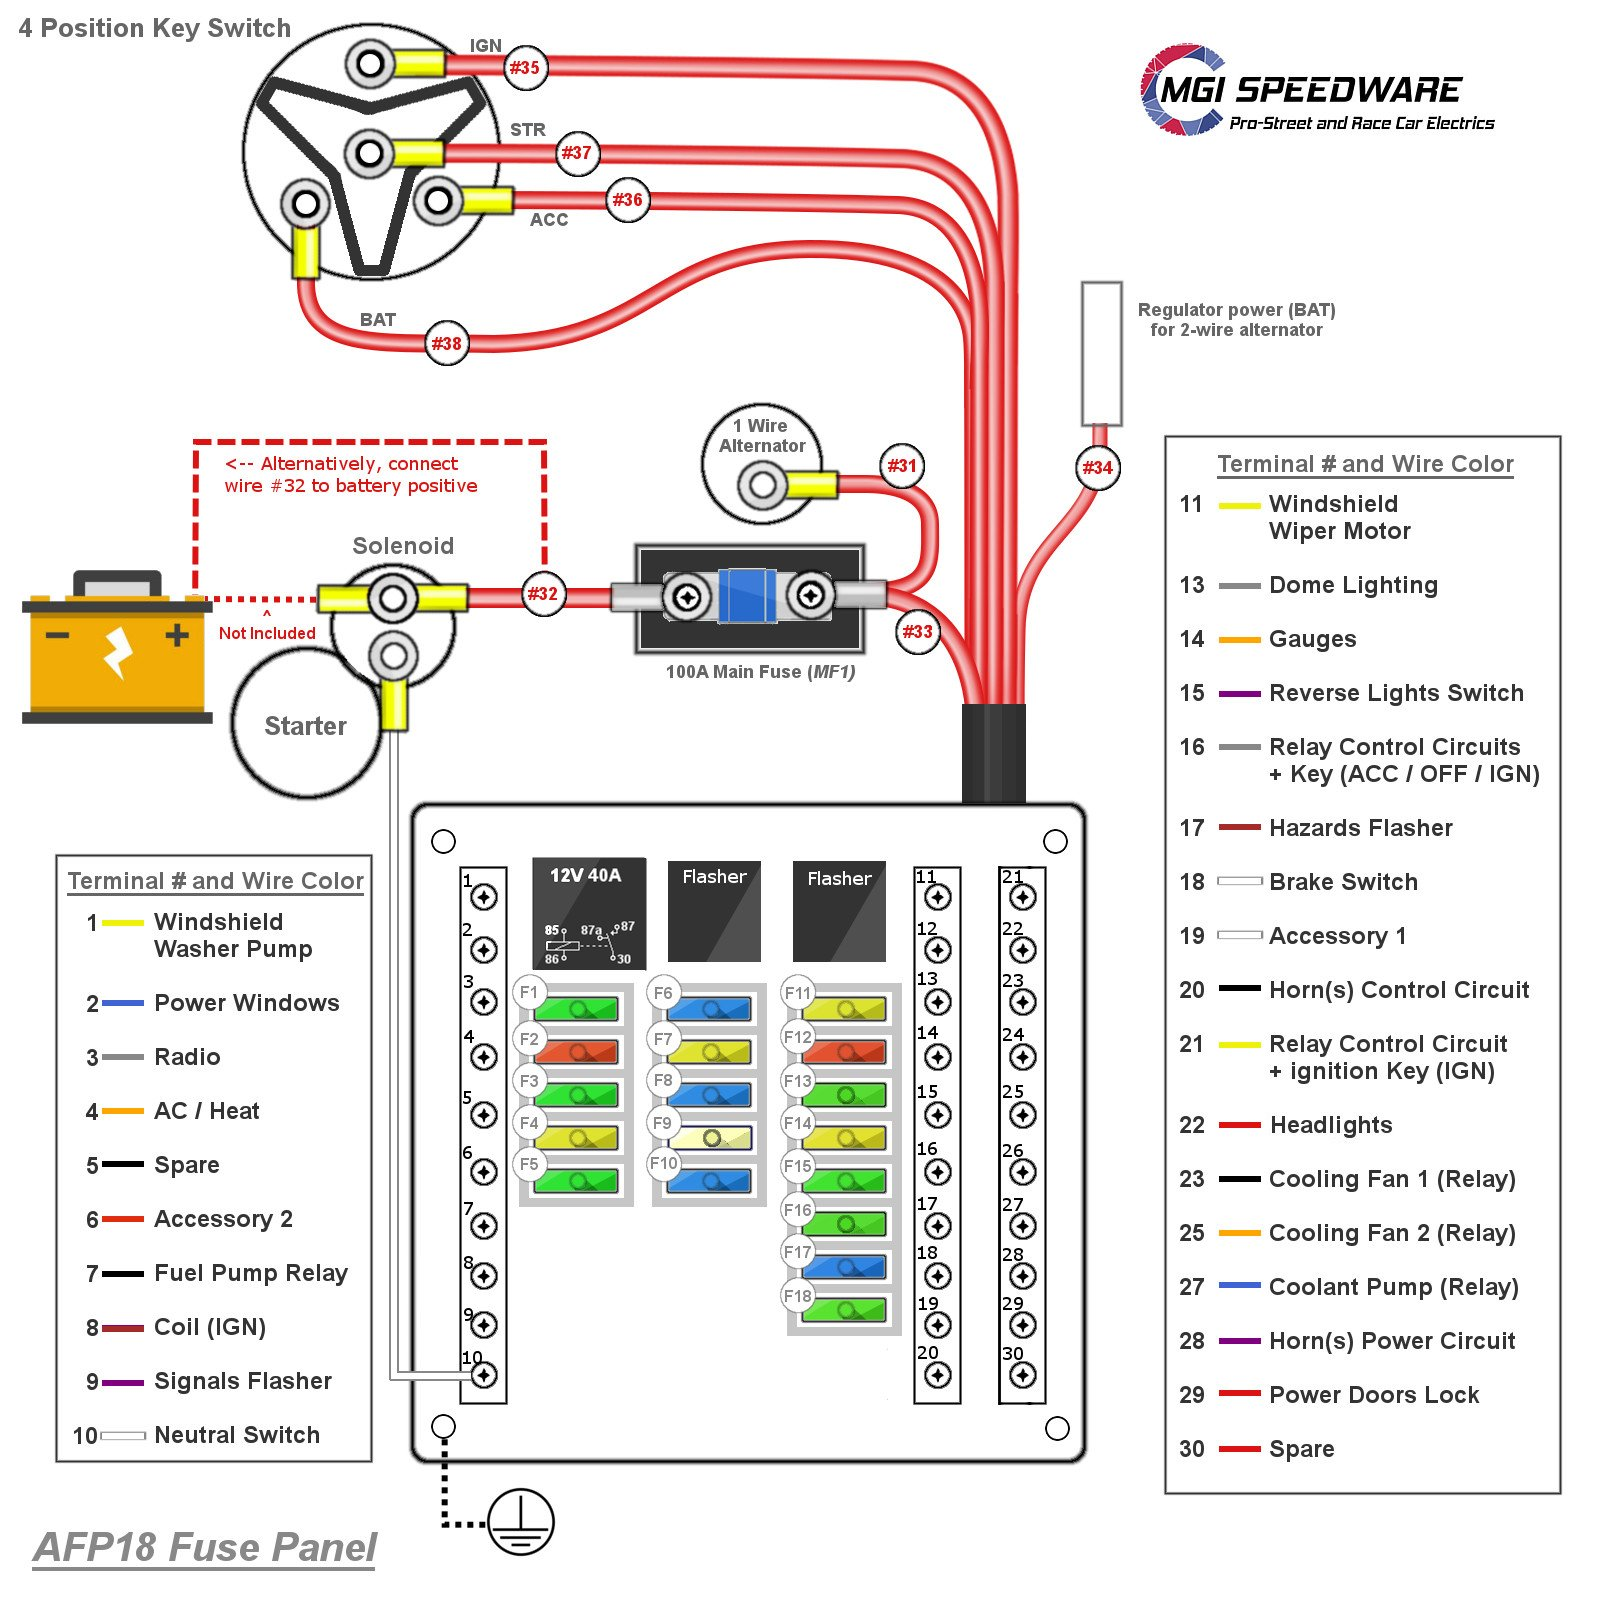 automotive fuse box with 18 fuses | mgi speedware fuse box installation manual pull out fuse box installation